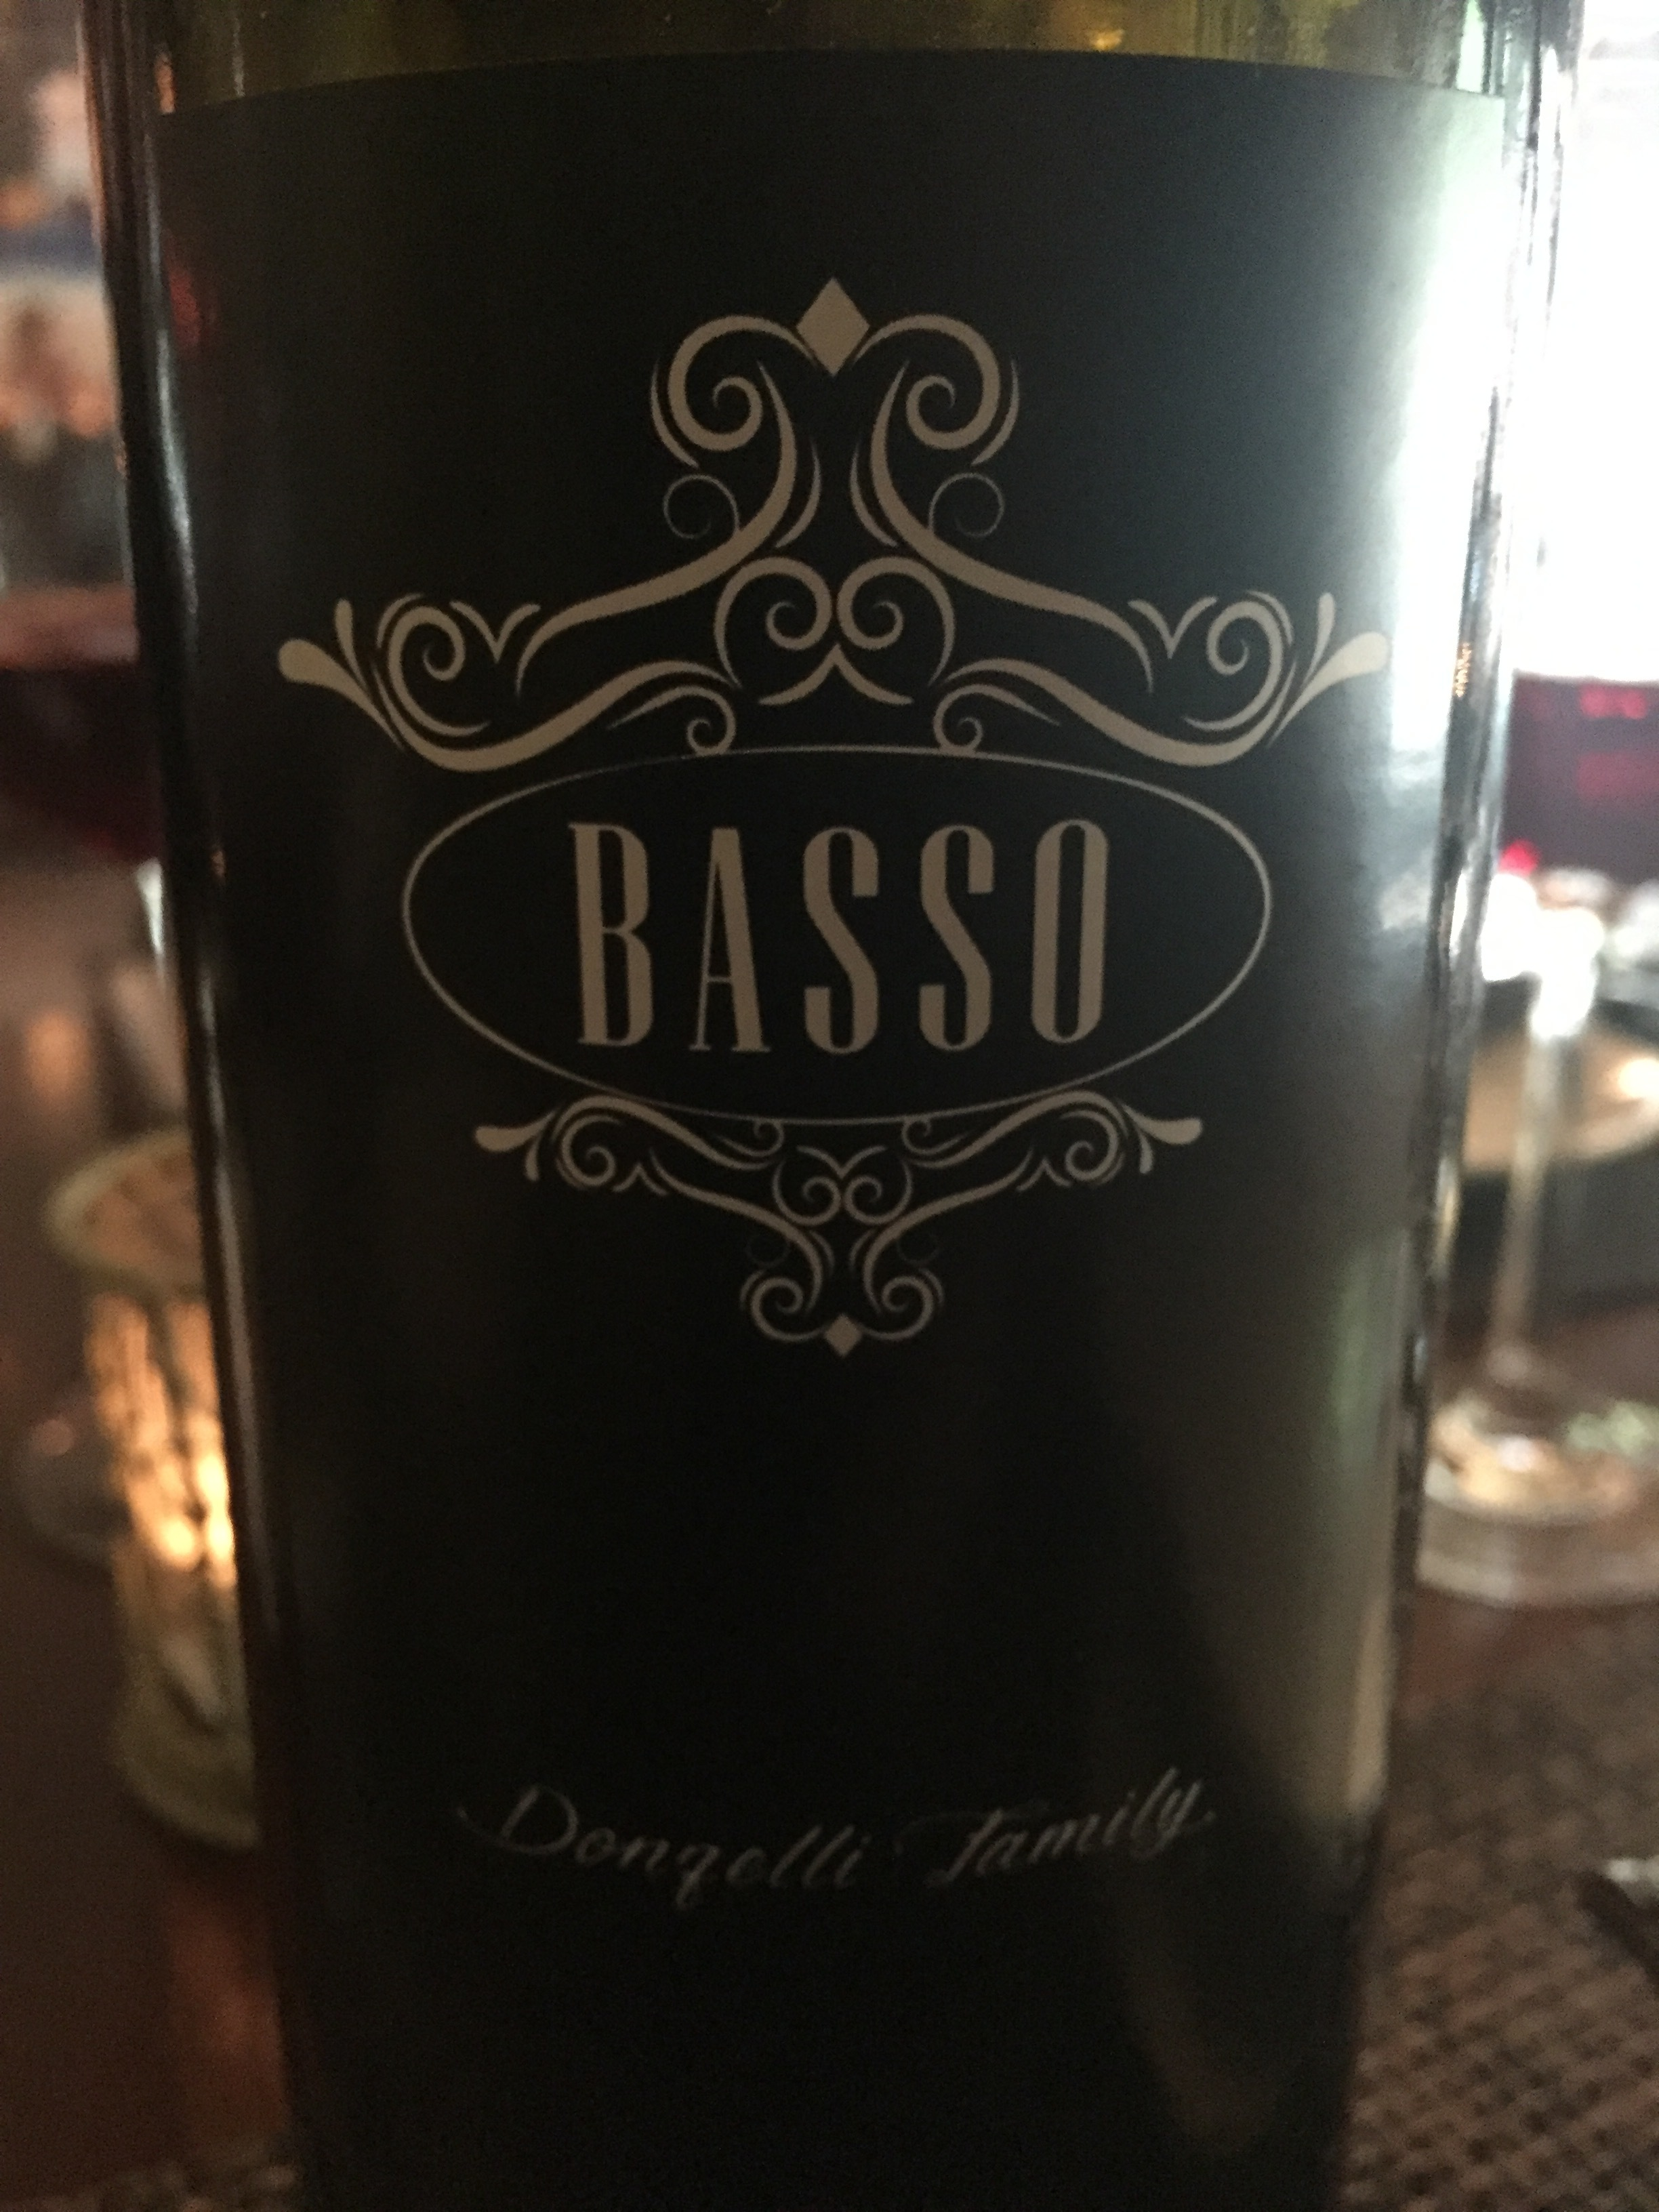 Episode 20: Basso a Toscan from the Donzelli Family Winery in Italy